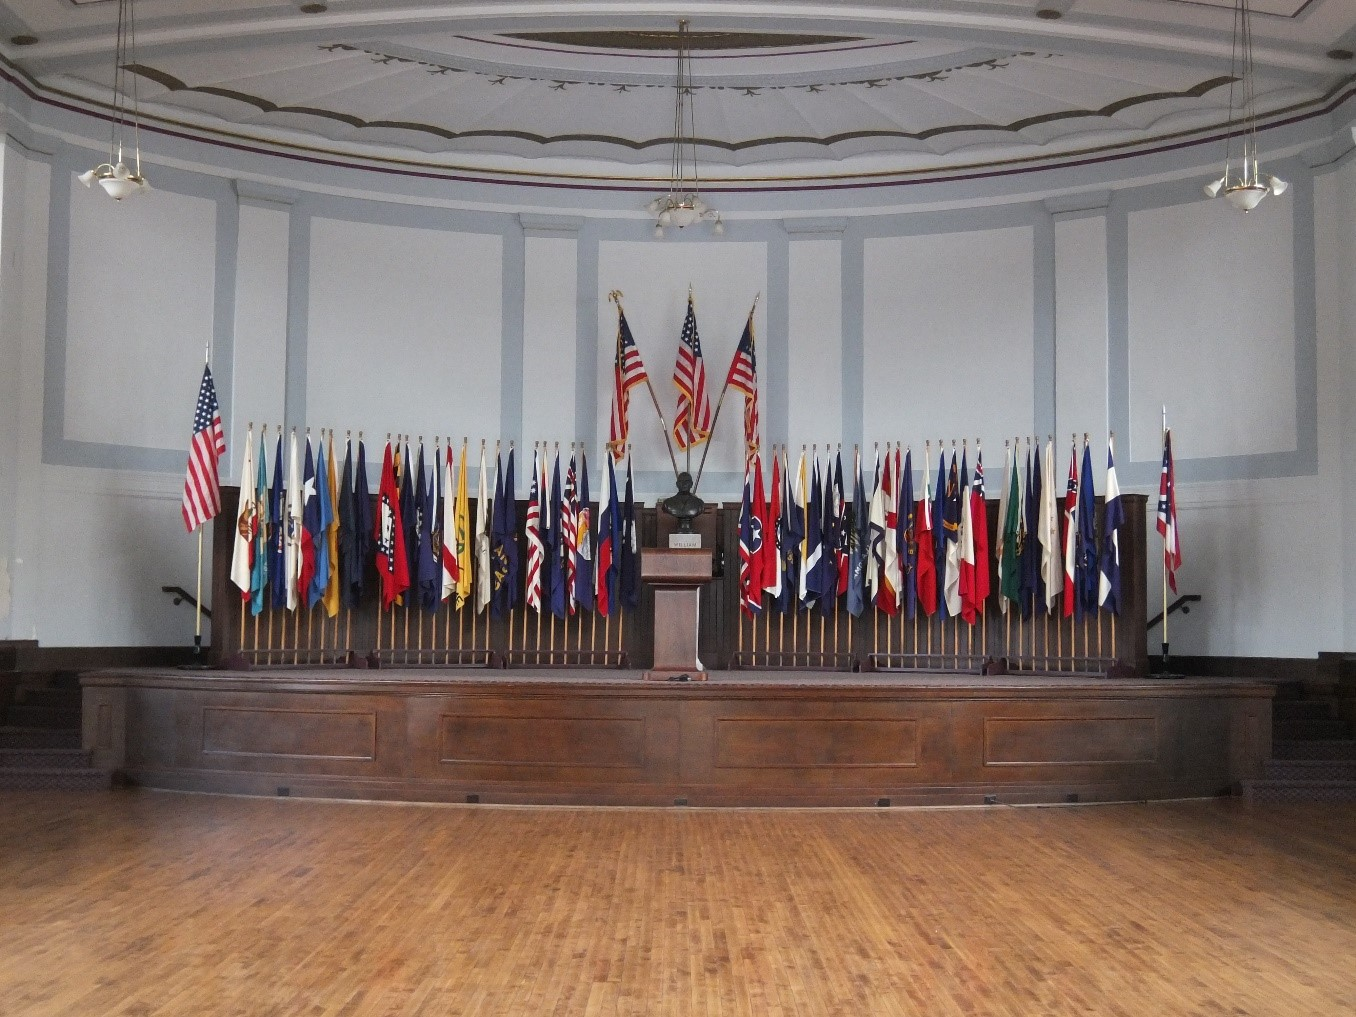 The auditorium stage features fifty state and four territorial flags, and a bust of William McKinley